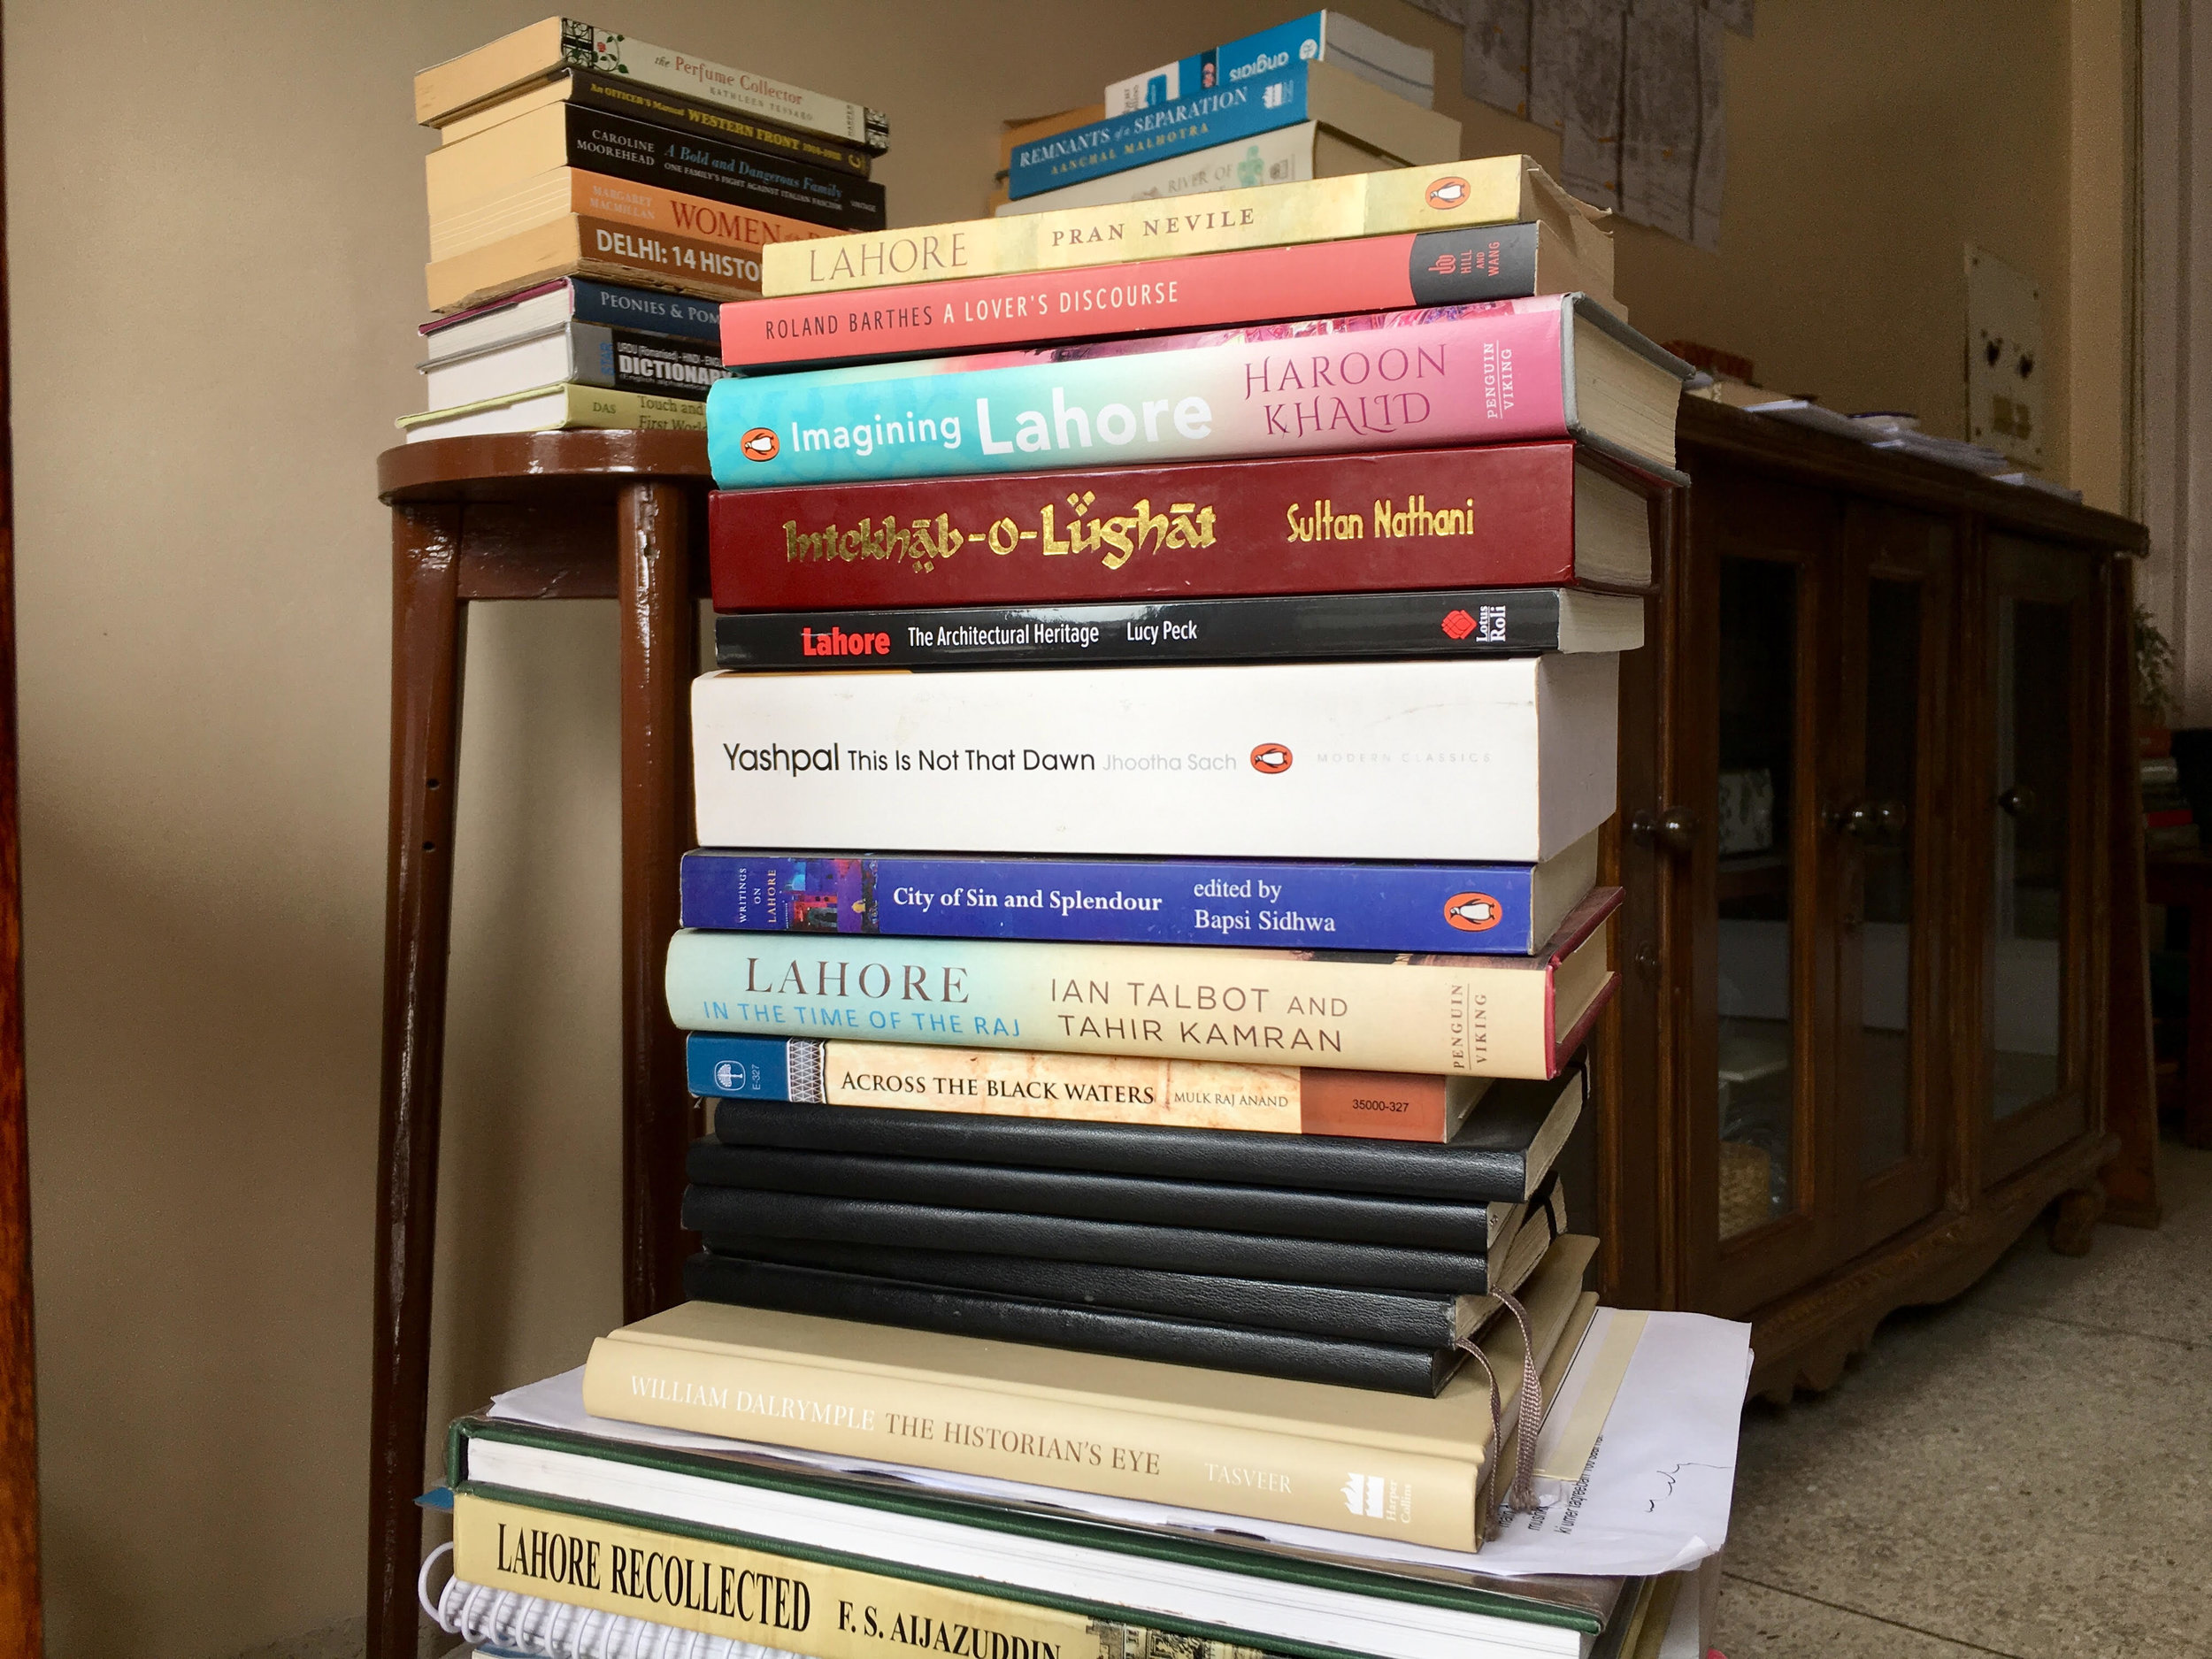 A glimpse of Aanchal's current reading list.